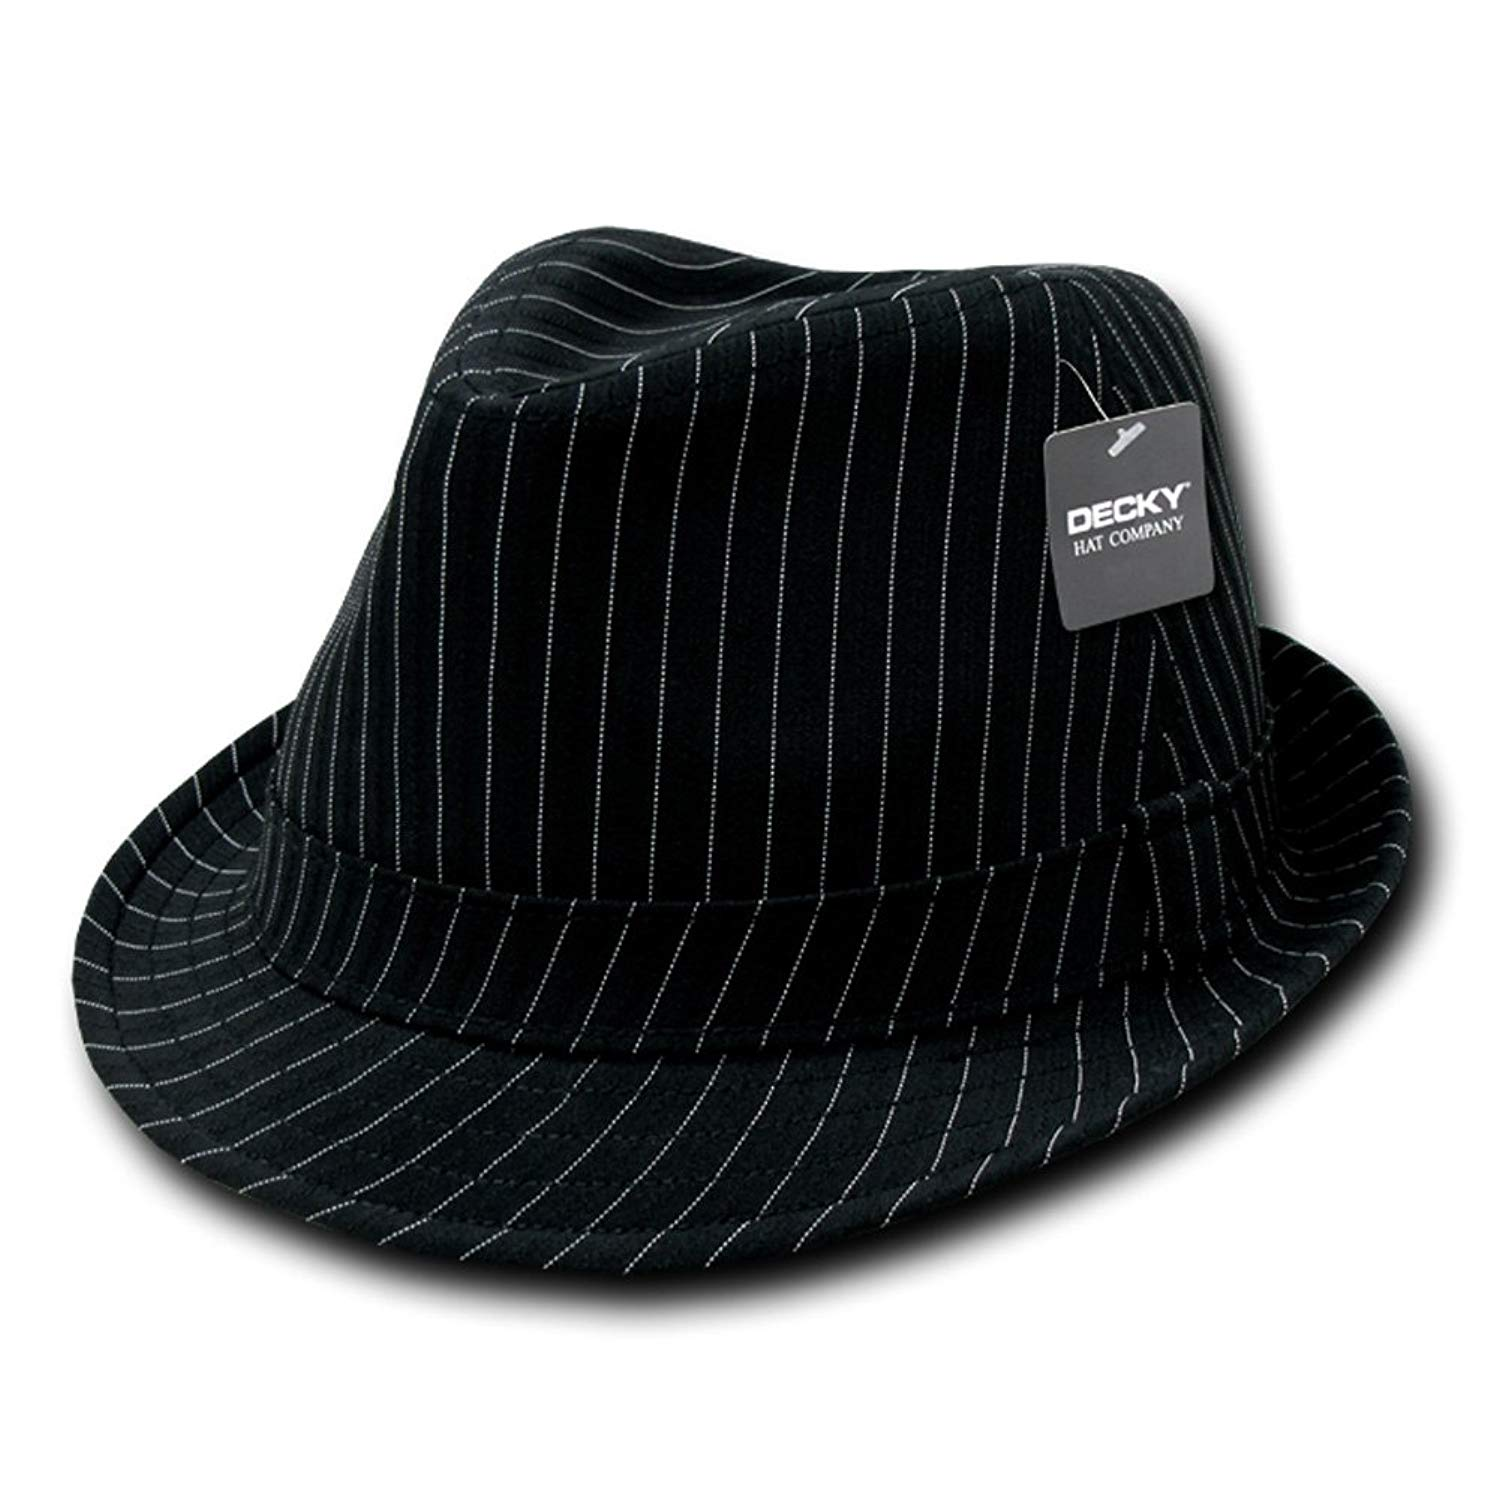 addebe313cfcf Get Quotations · DECKY Black Deluxe Pinstripe Fedora